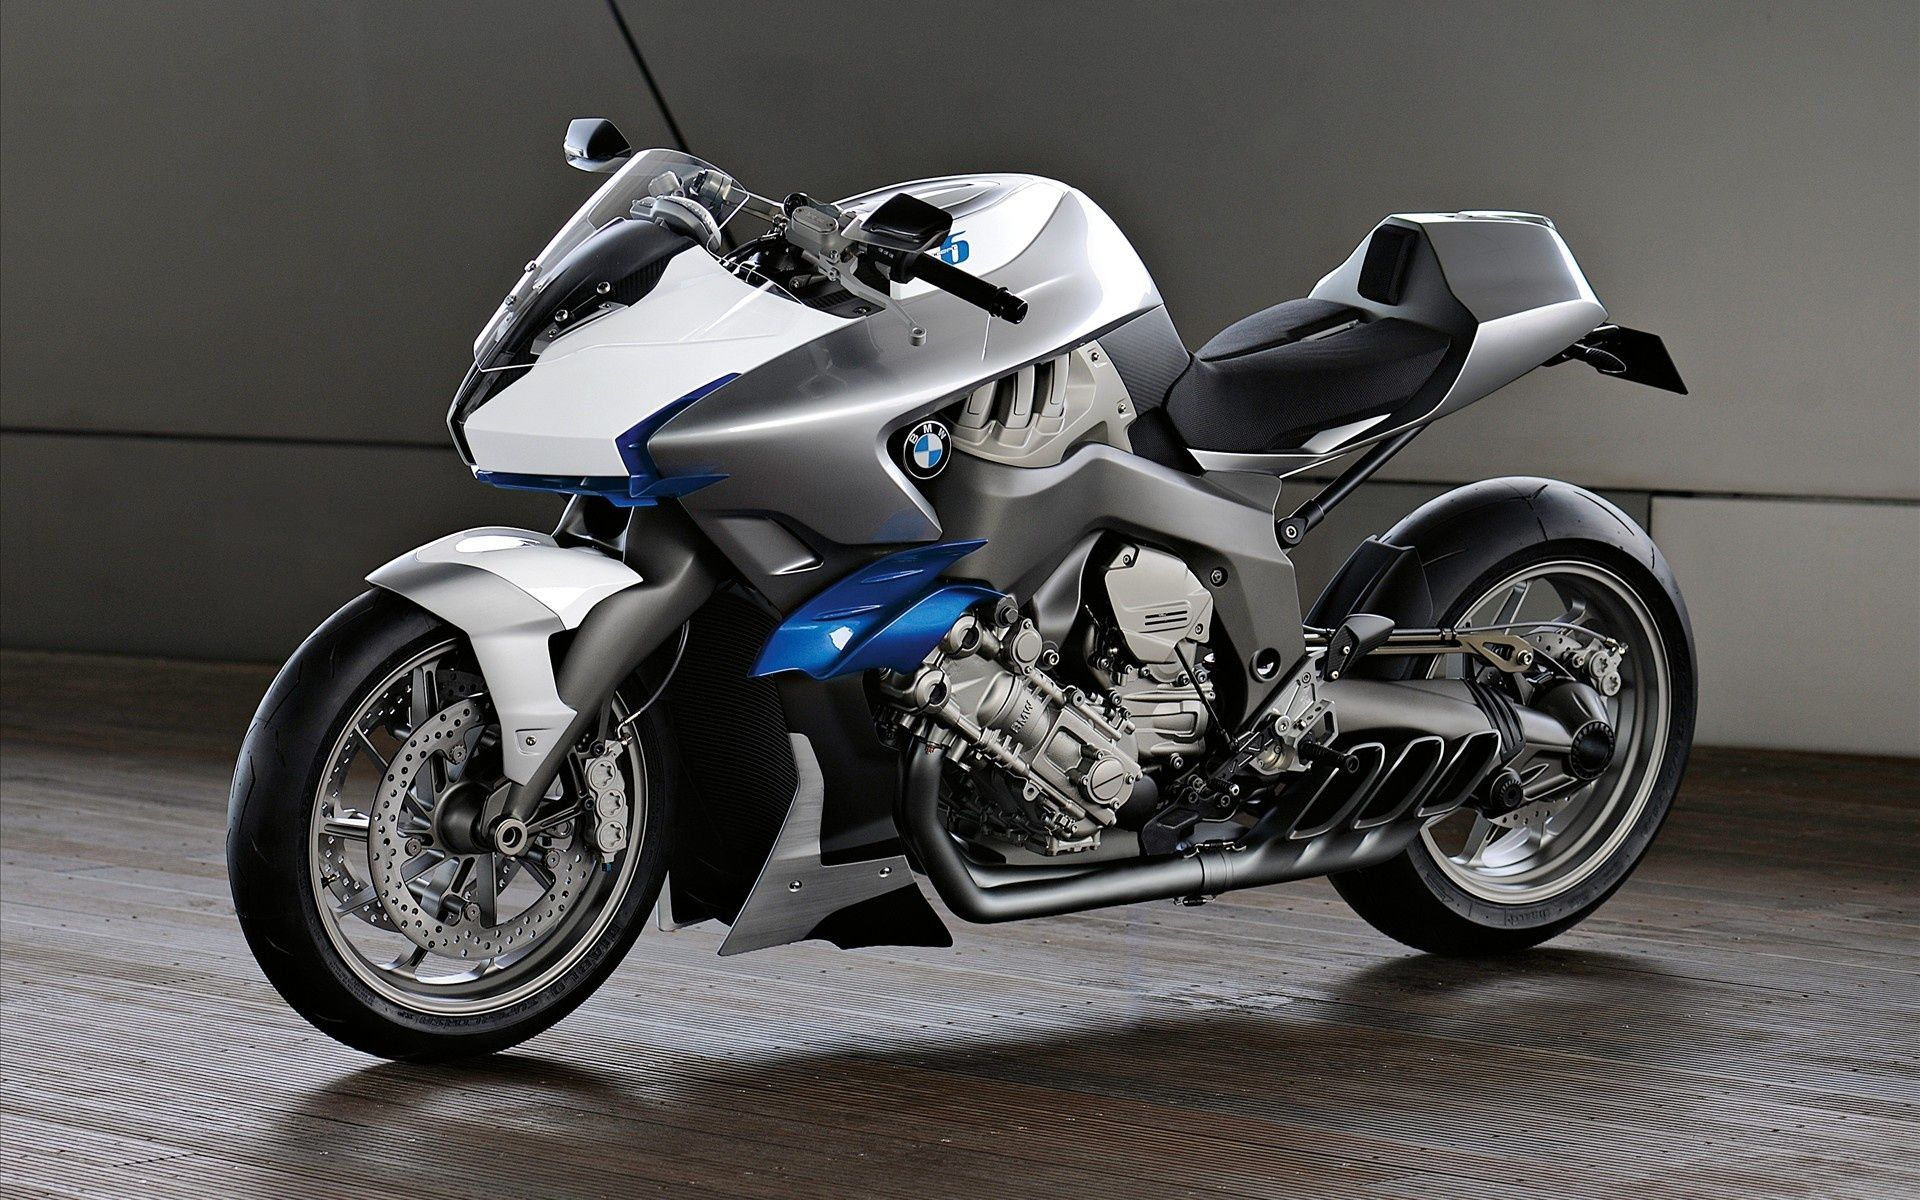 Riders rejoice as BMW increases warranty for new motorcycles to three years